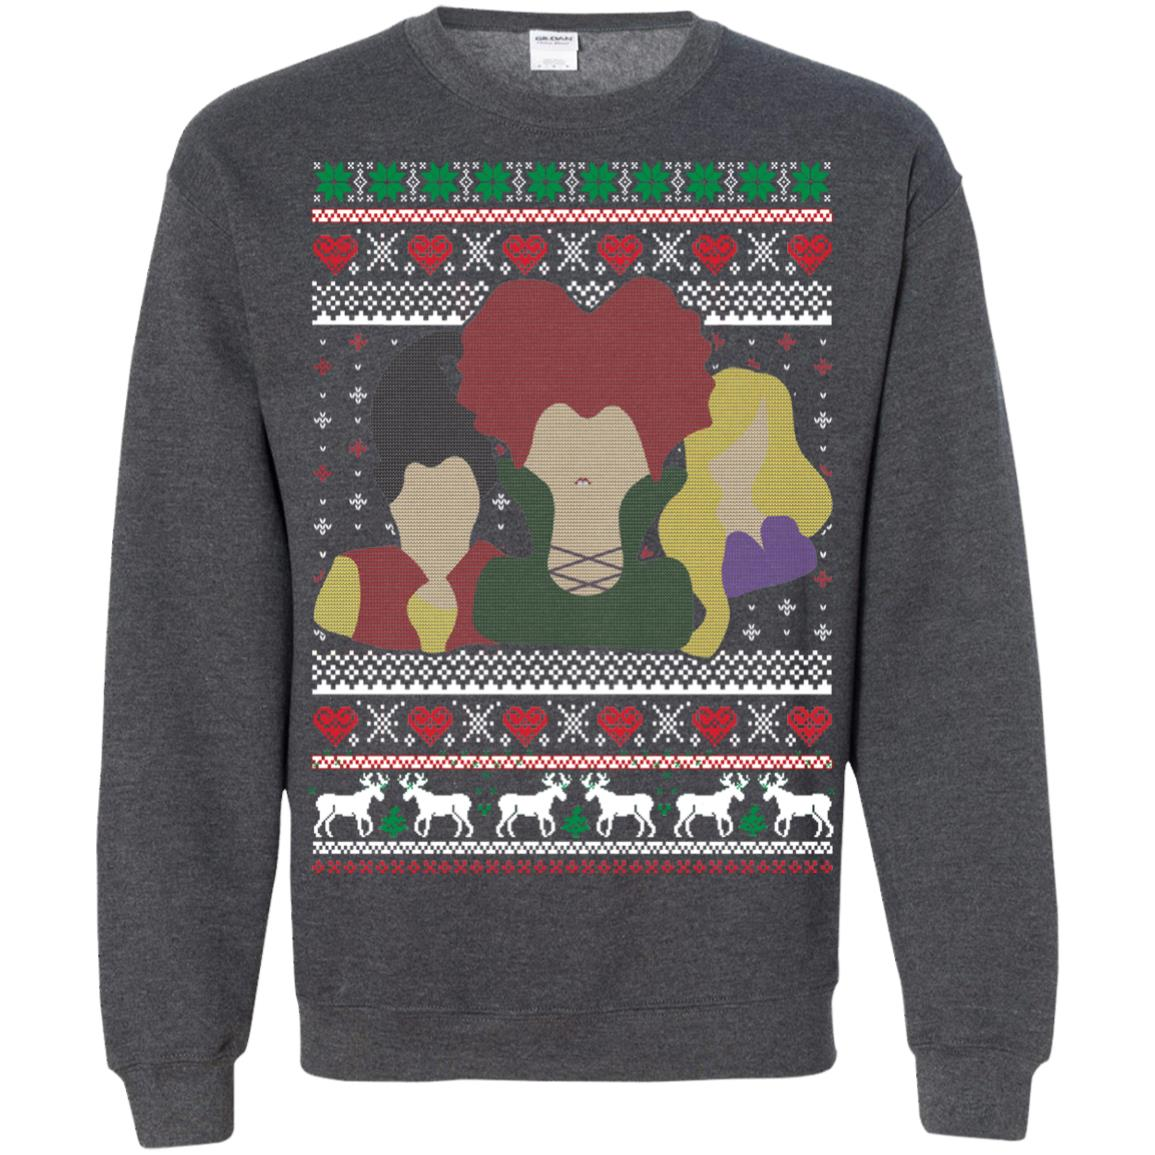 image 651px Hocus Pocus Ugly Christmas Sweater Shirt